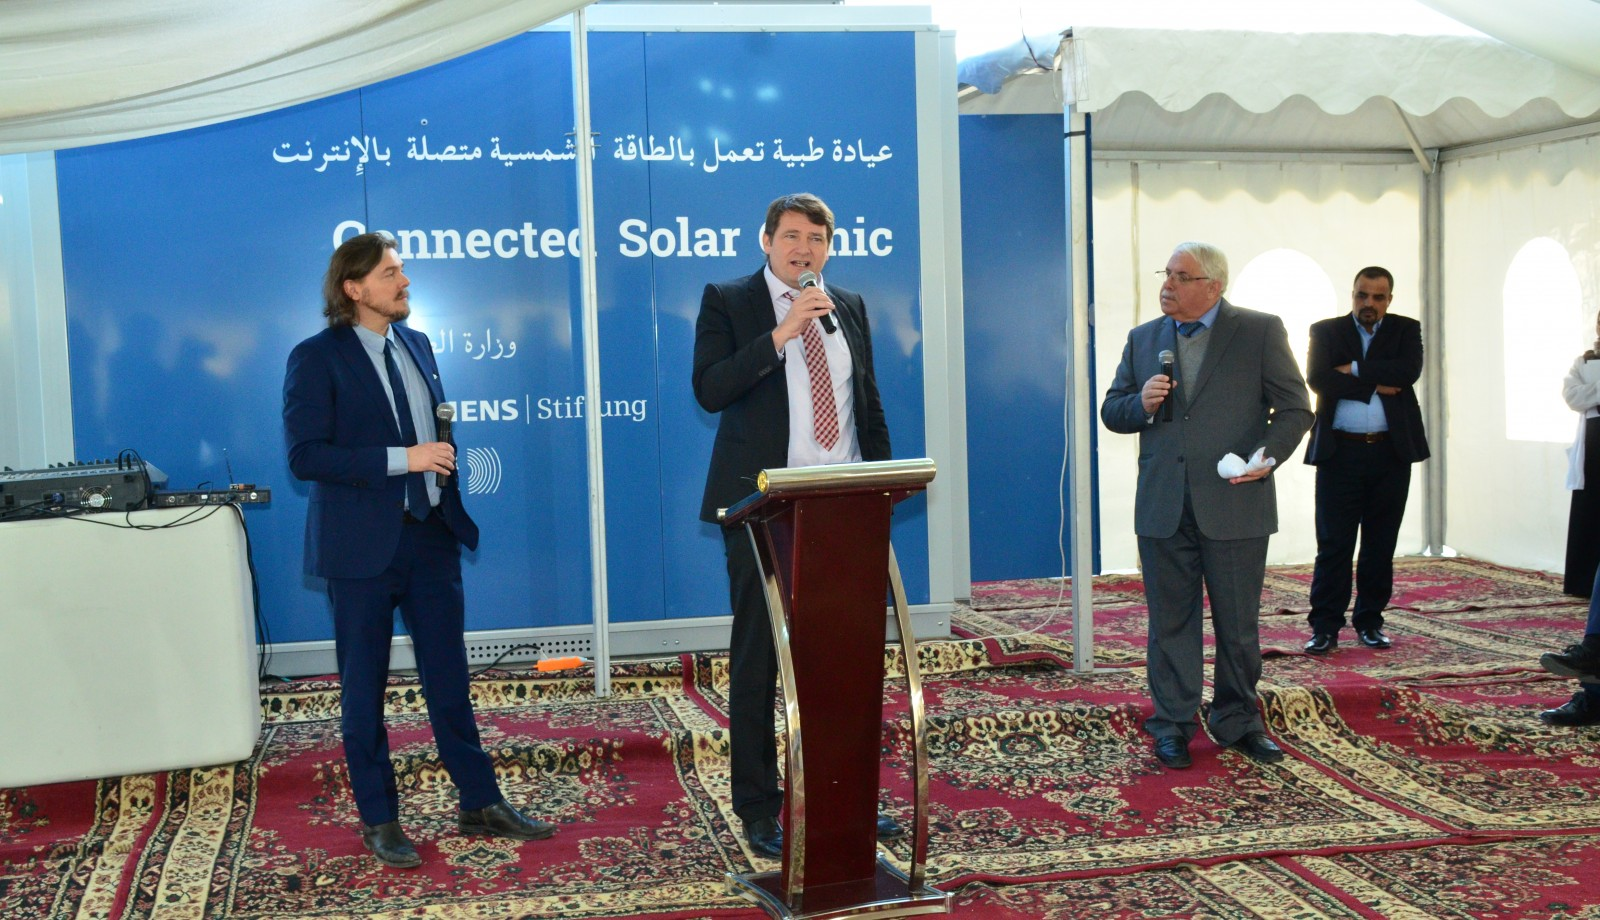 02_Connected Solar Clinic Inauguration